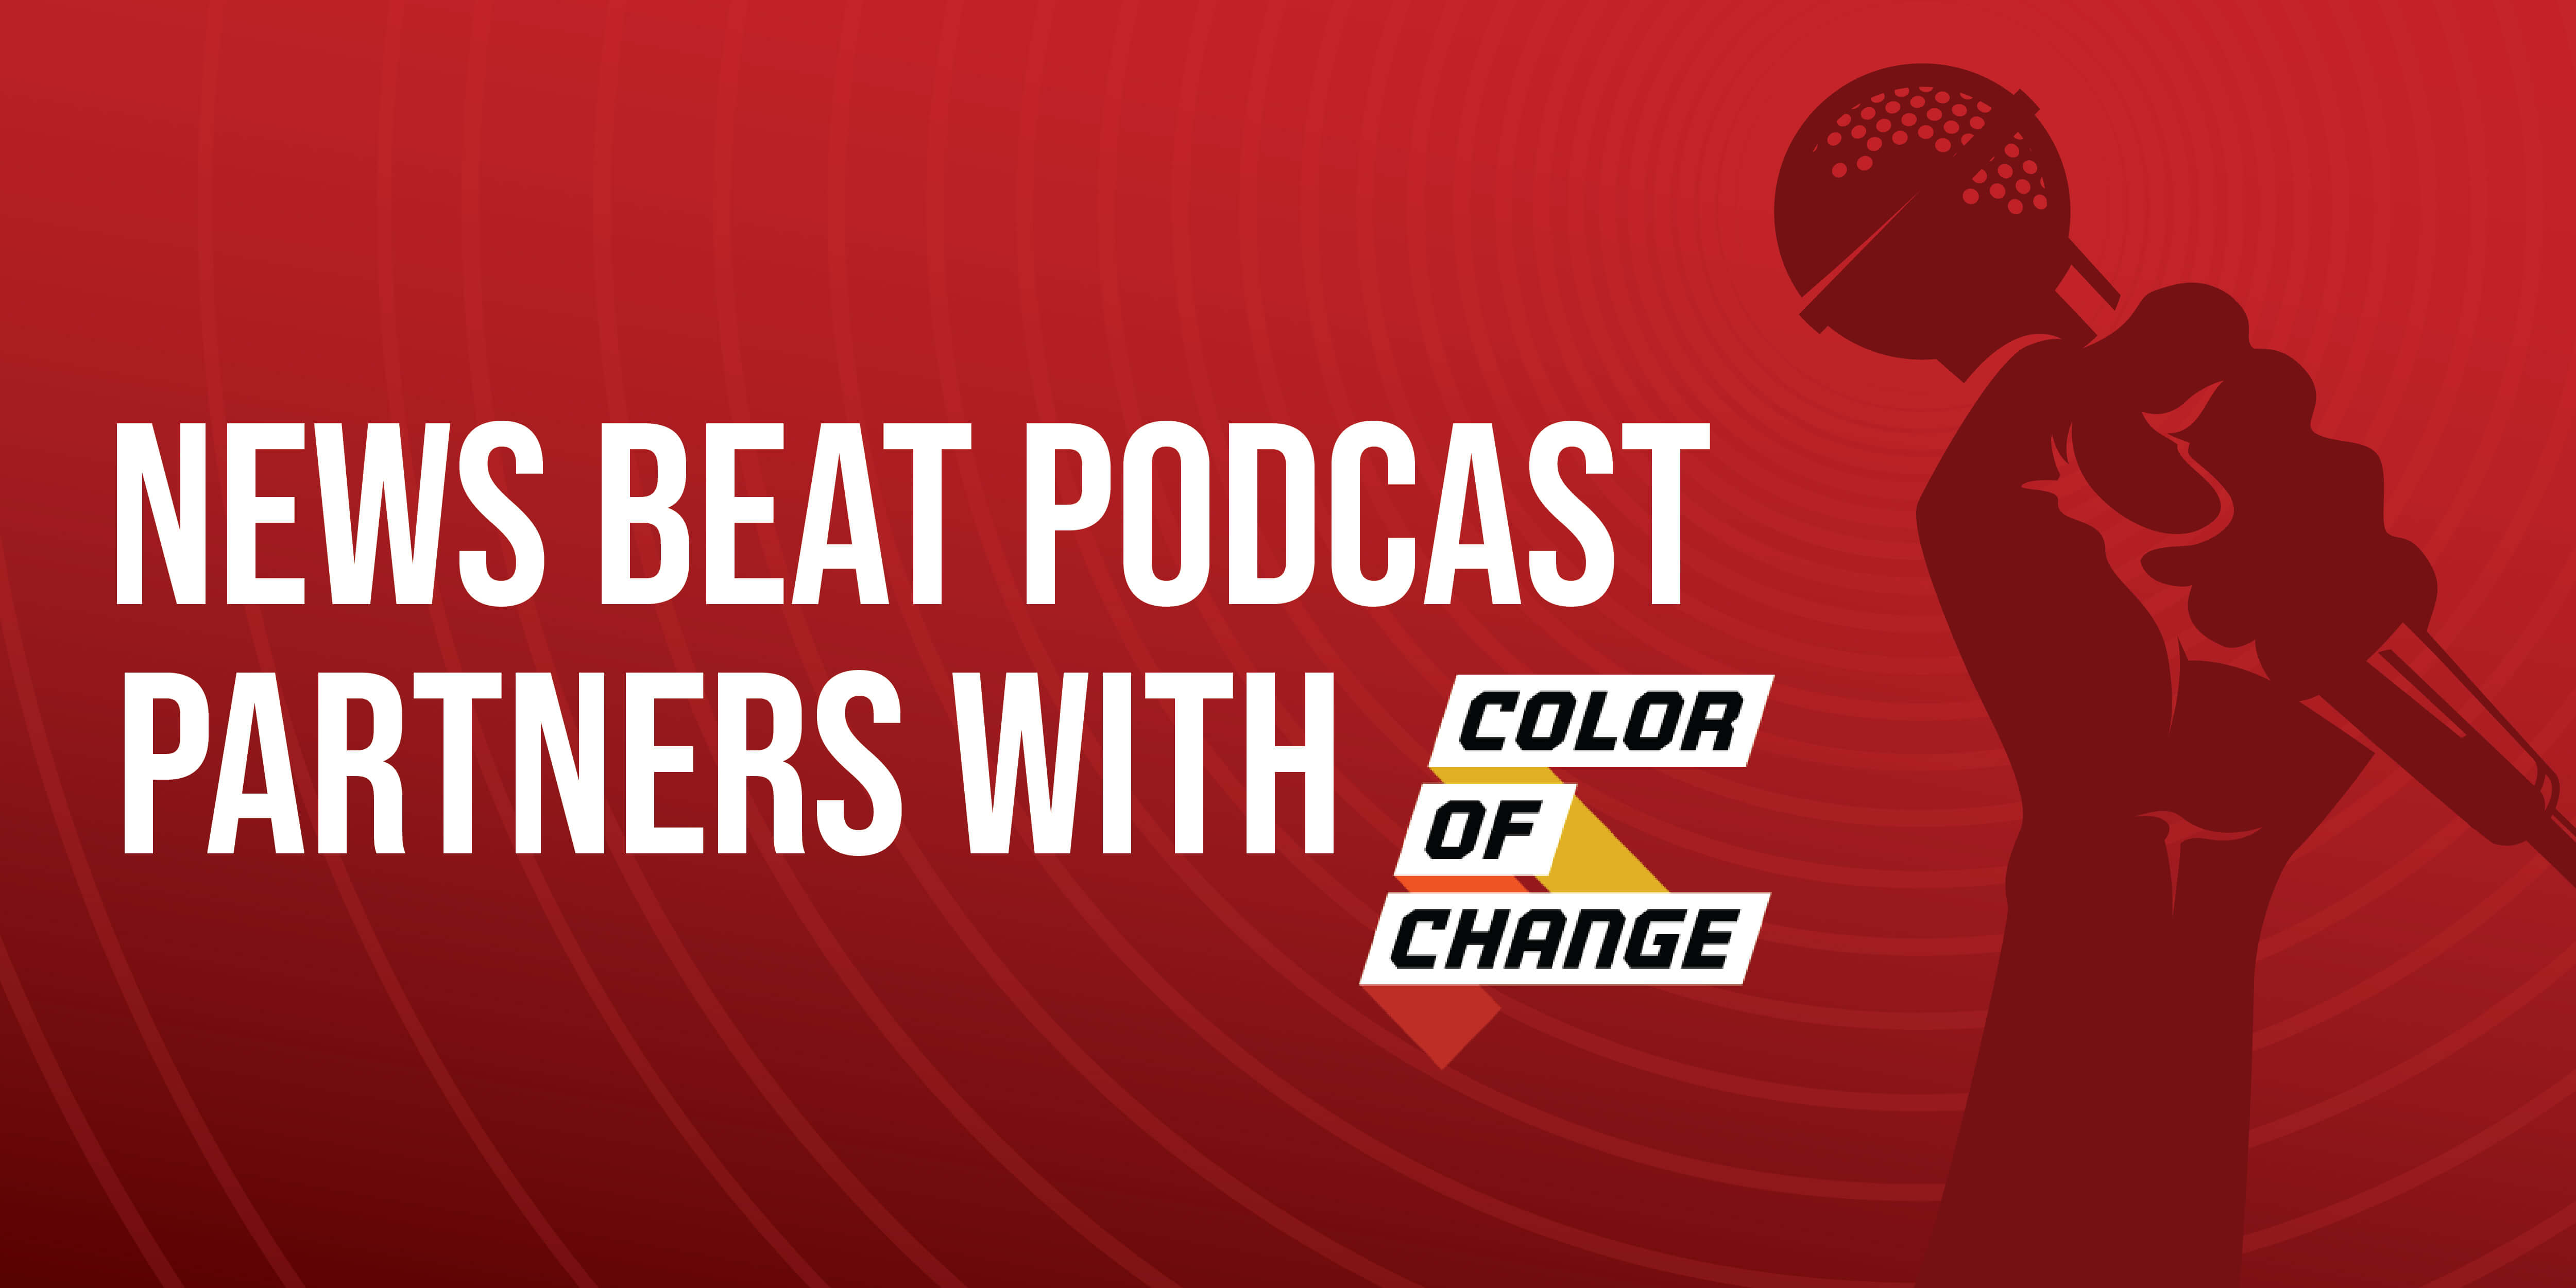 News Beat Podcast Partners With Color Of Change